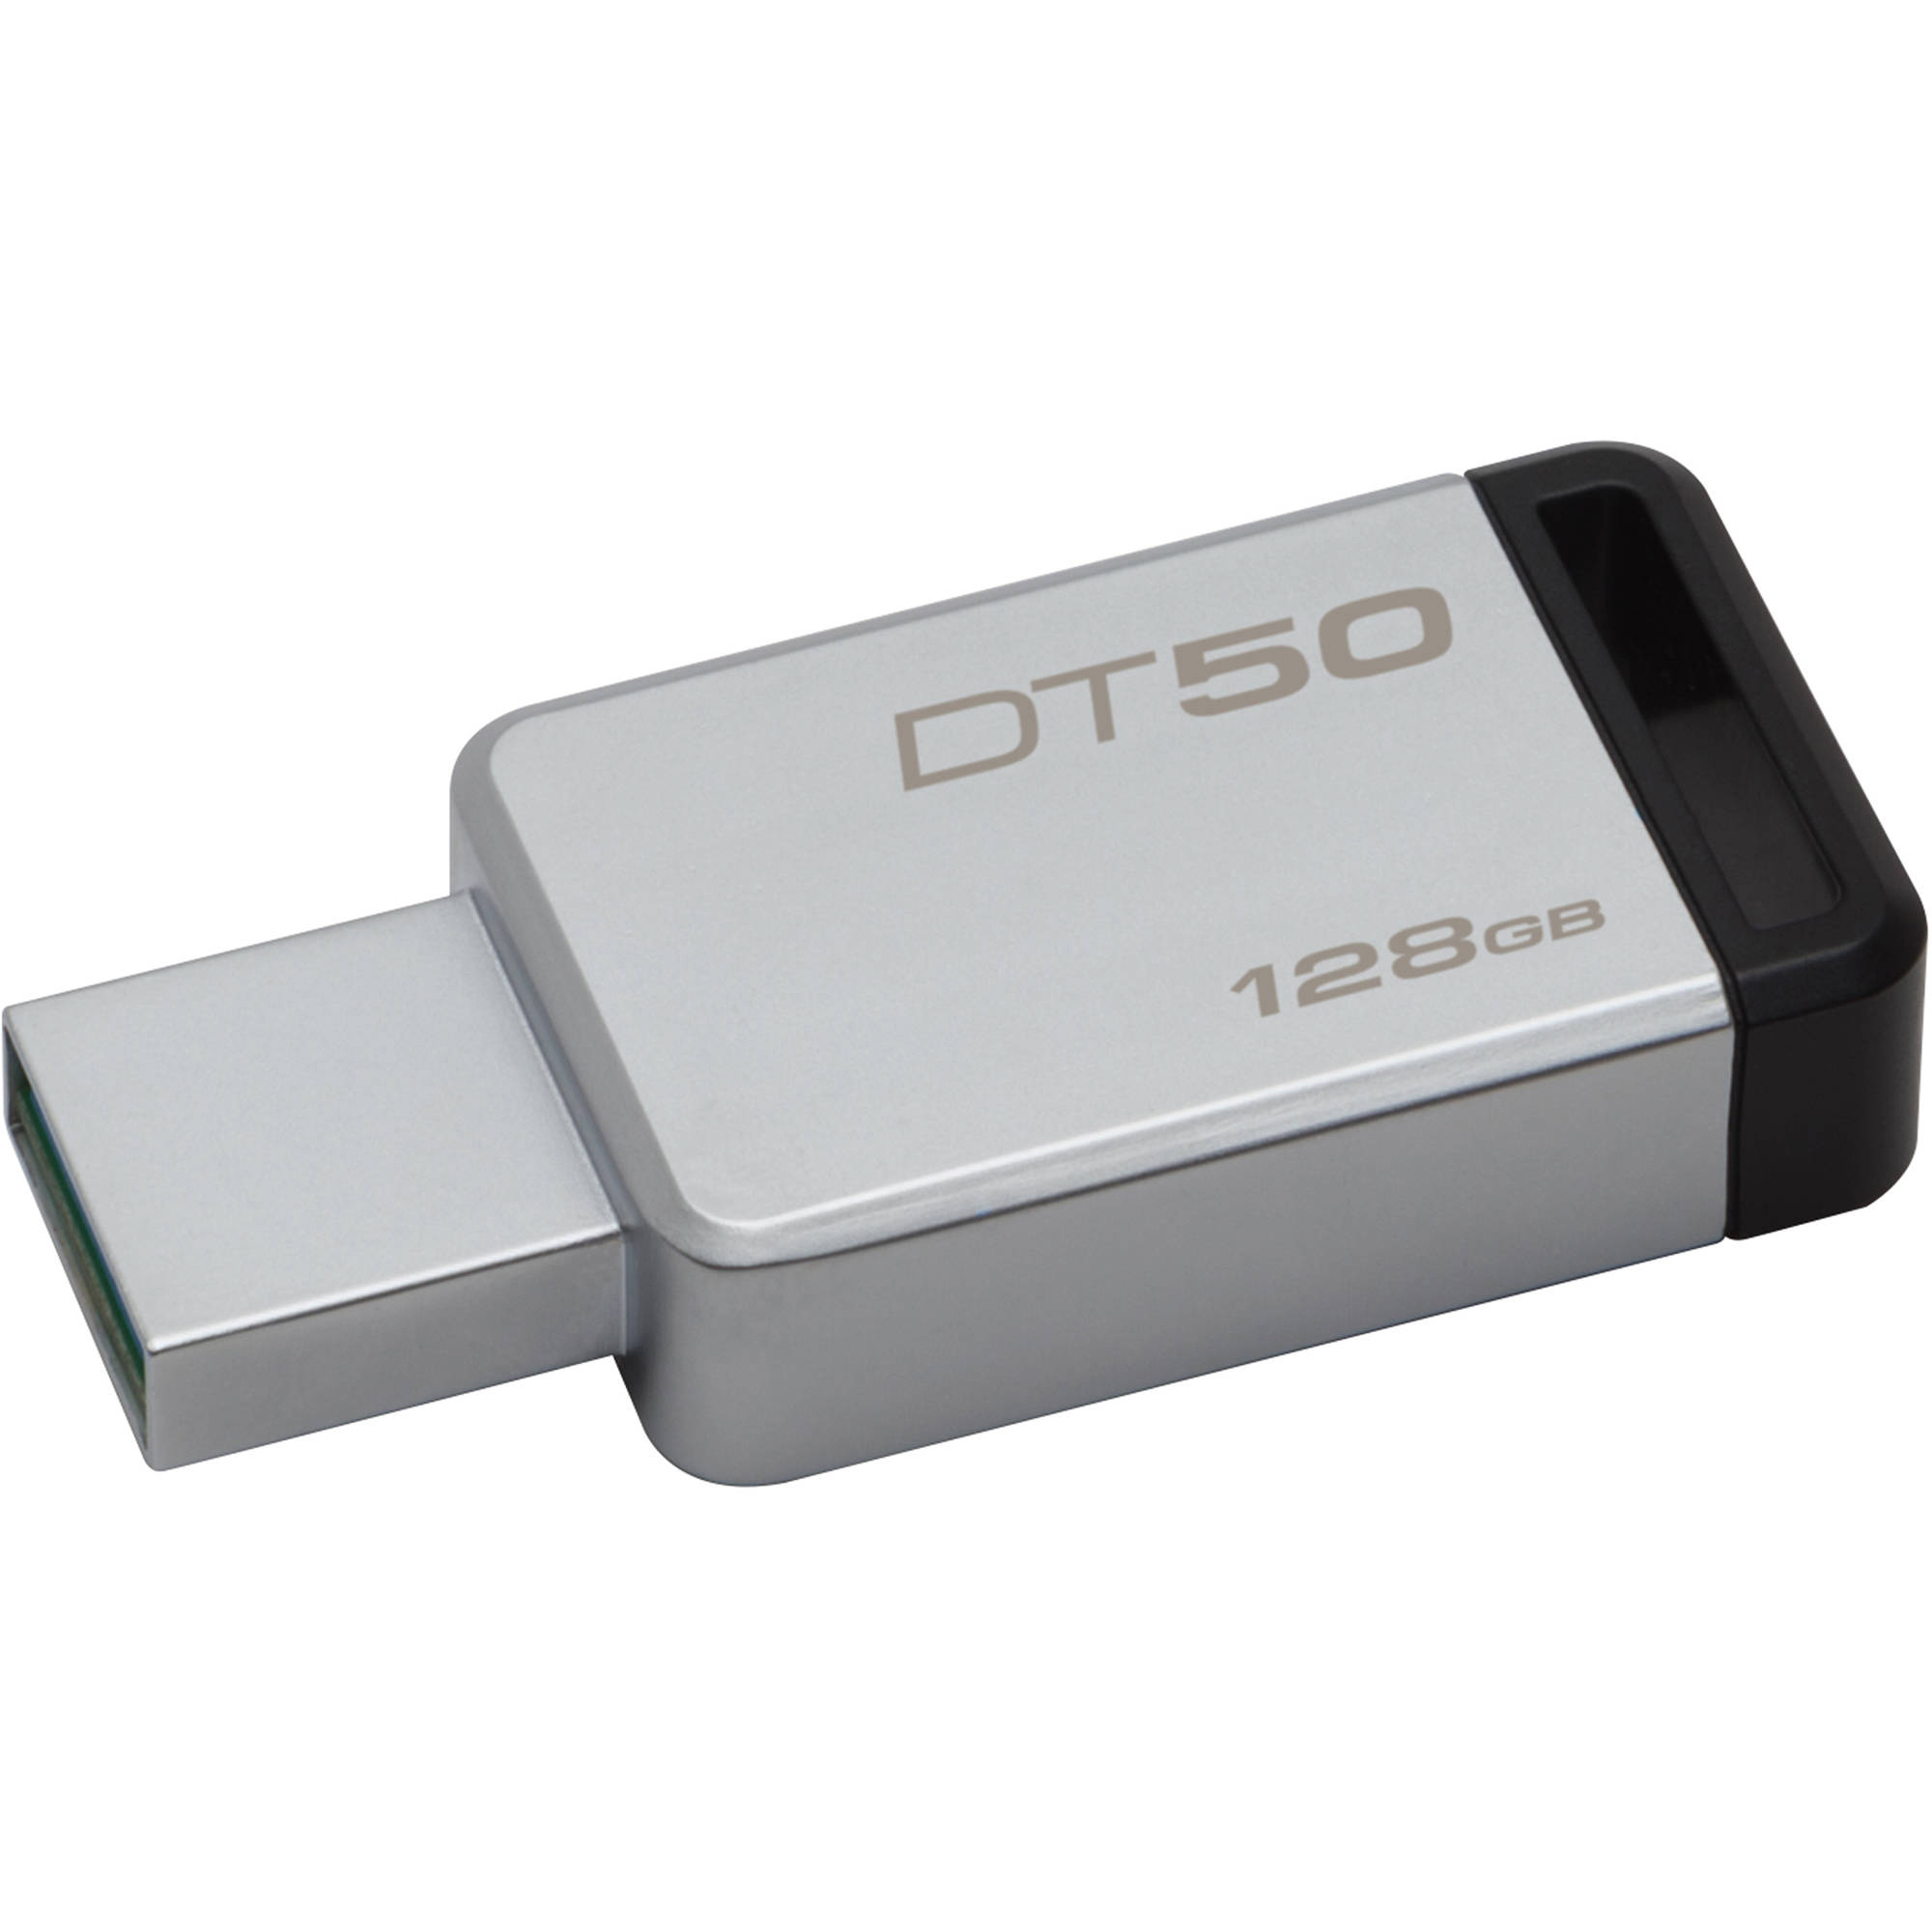 Original Kingston DataTraveler 50 128GB USB 3.0 Flash Drive (DT50/128GB)